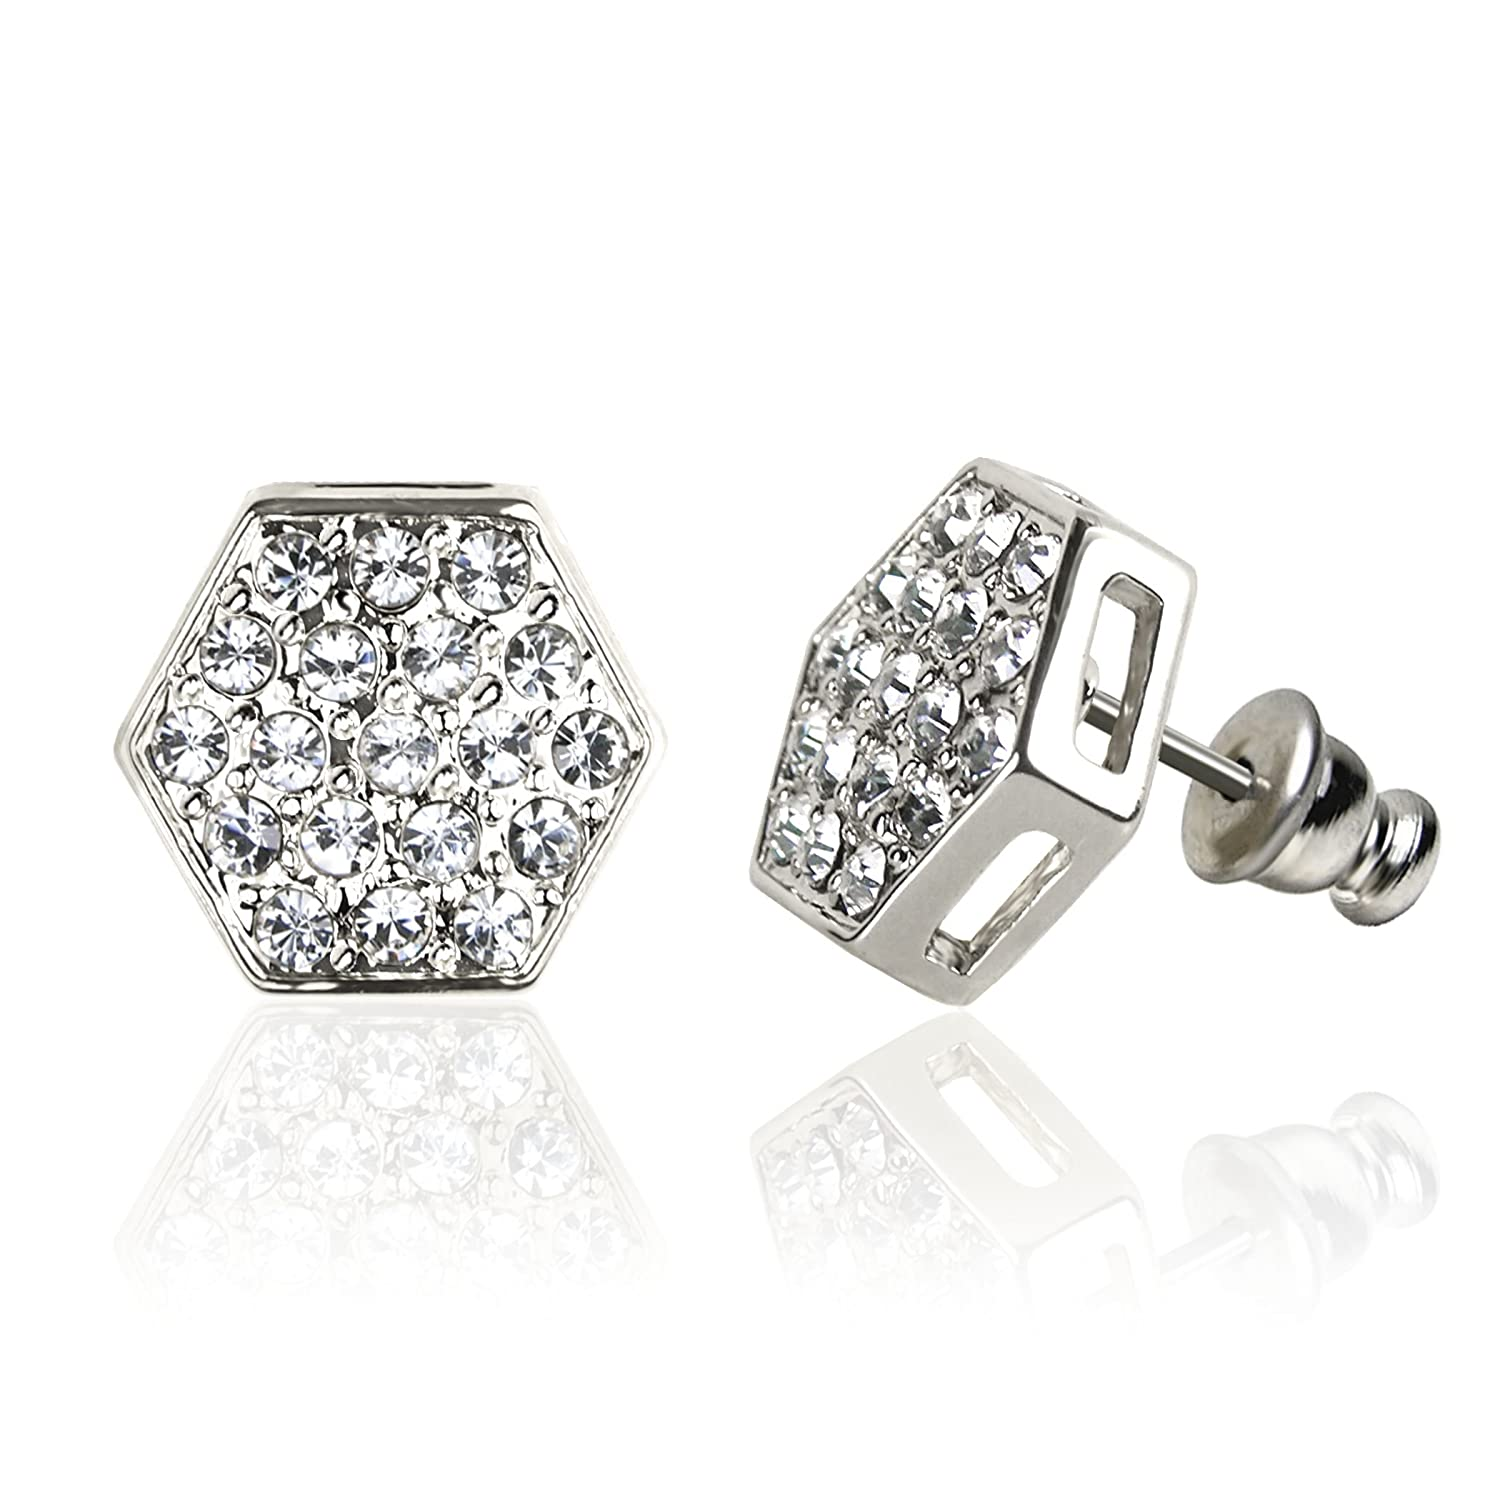 Forever Silver Austrian Crystal Hexagon Earrings Surgical Steel Posts & Comfort Backs E152S